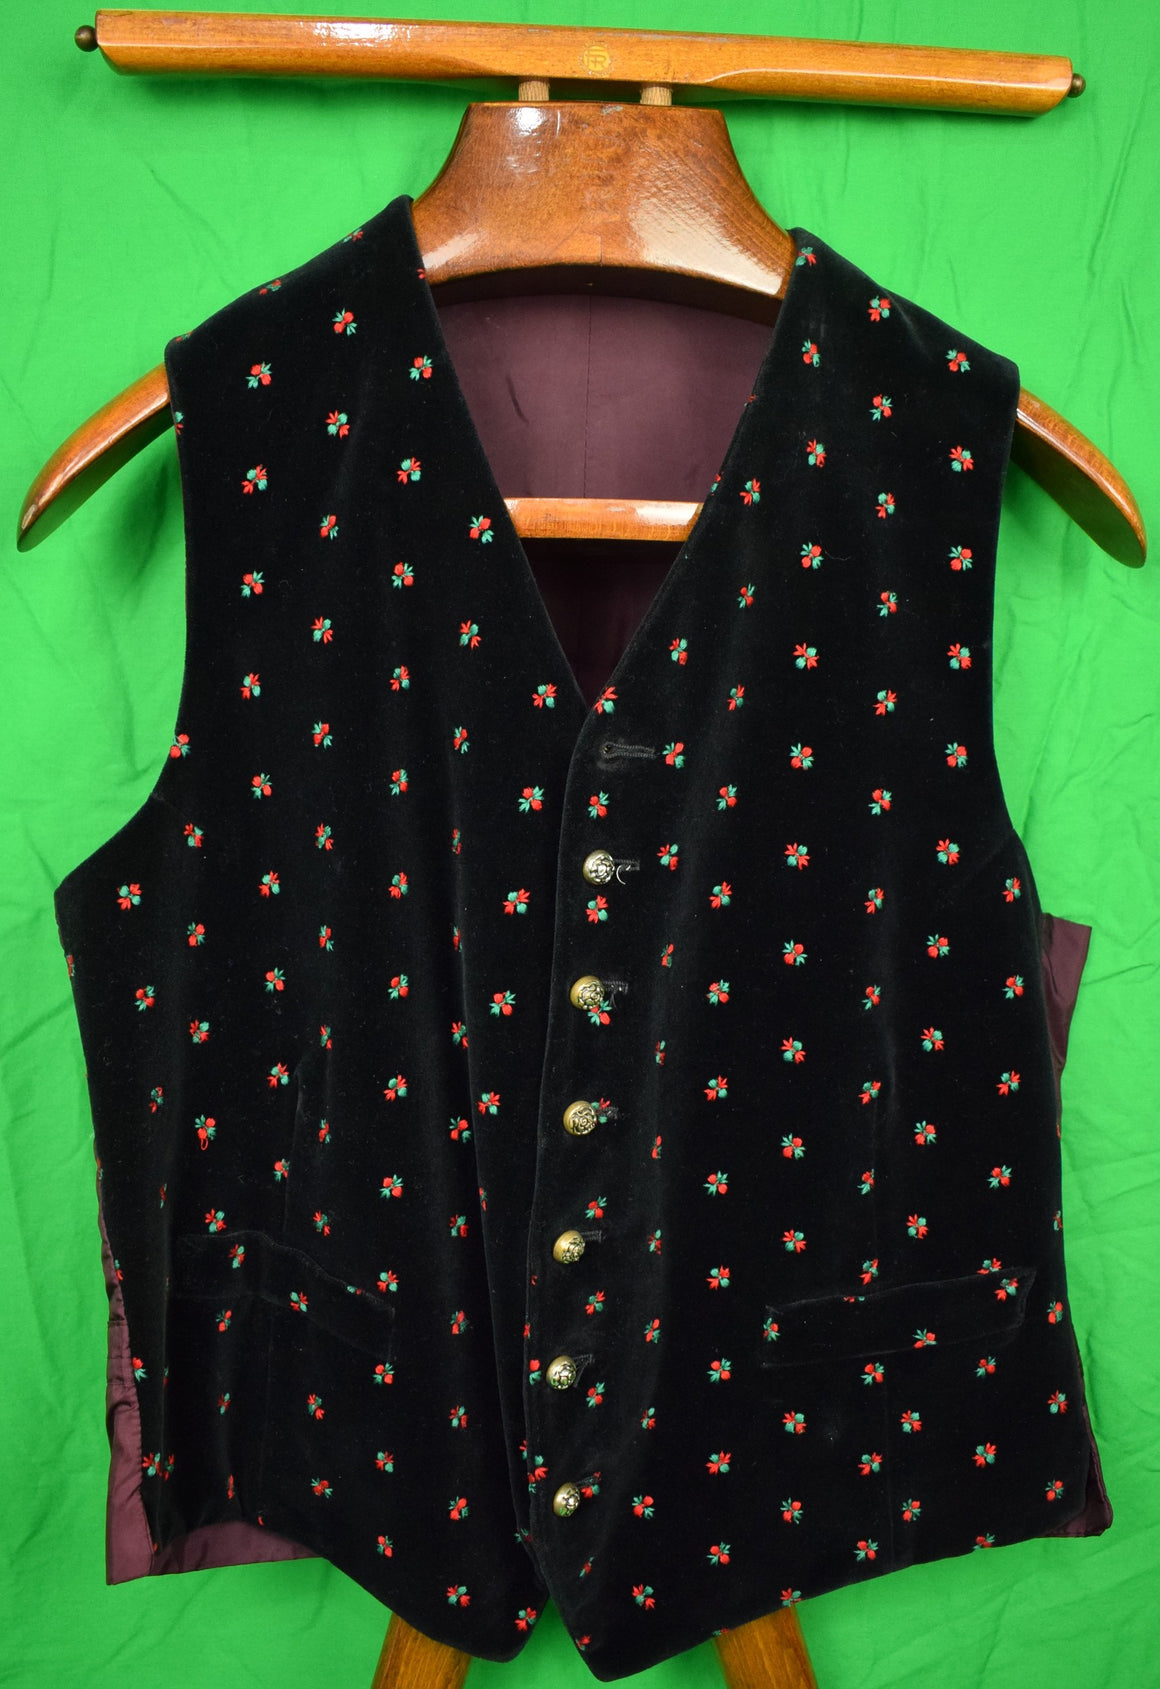 Black Velvet (7) Button Waistcoat w/ Embroidered Red & Green Holly